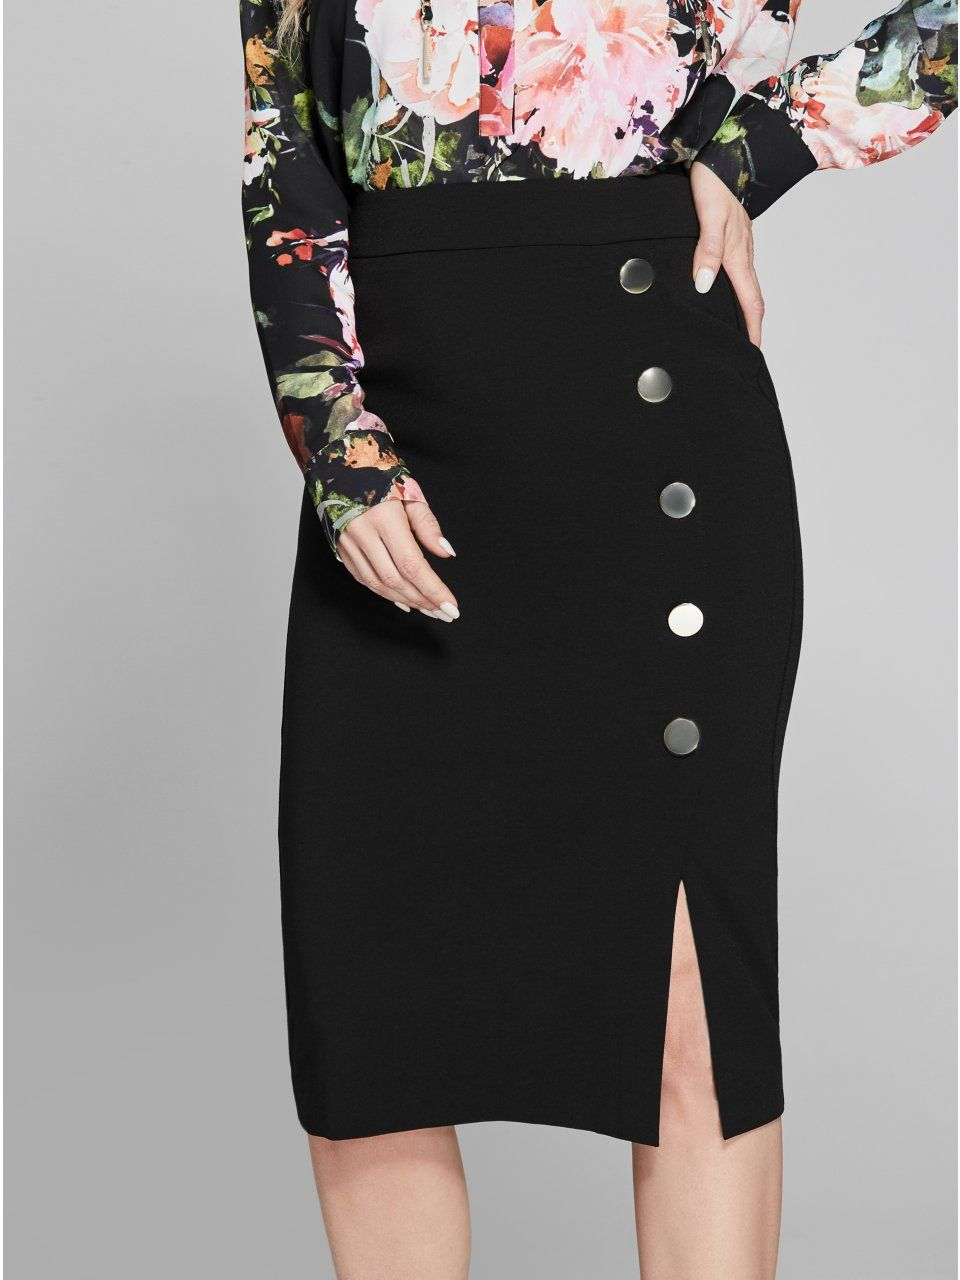 cf7f210c9e9dfc Jane Button Pencil Skirt in 2019 | Products | Pencil skirt outfits ...